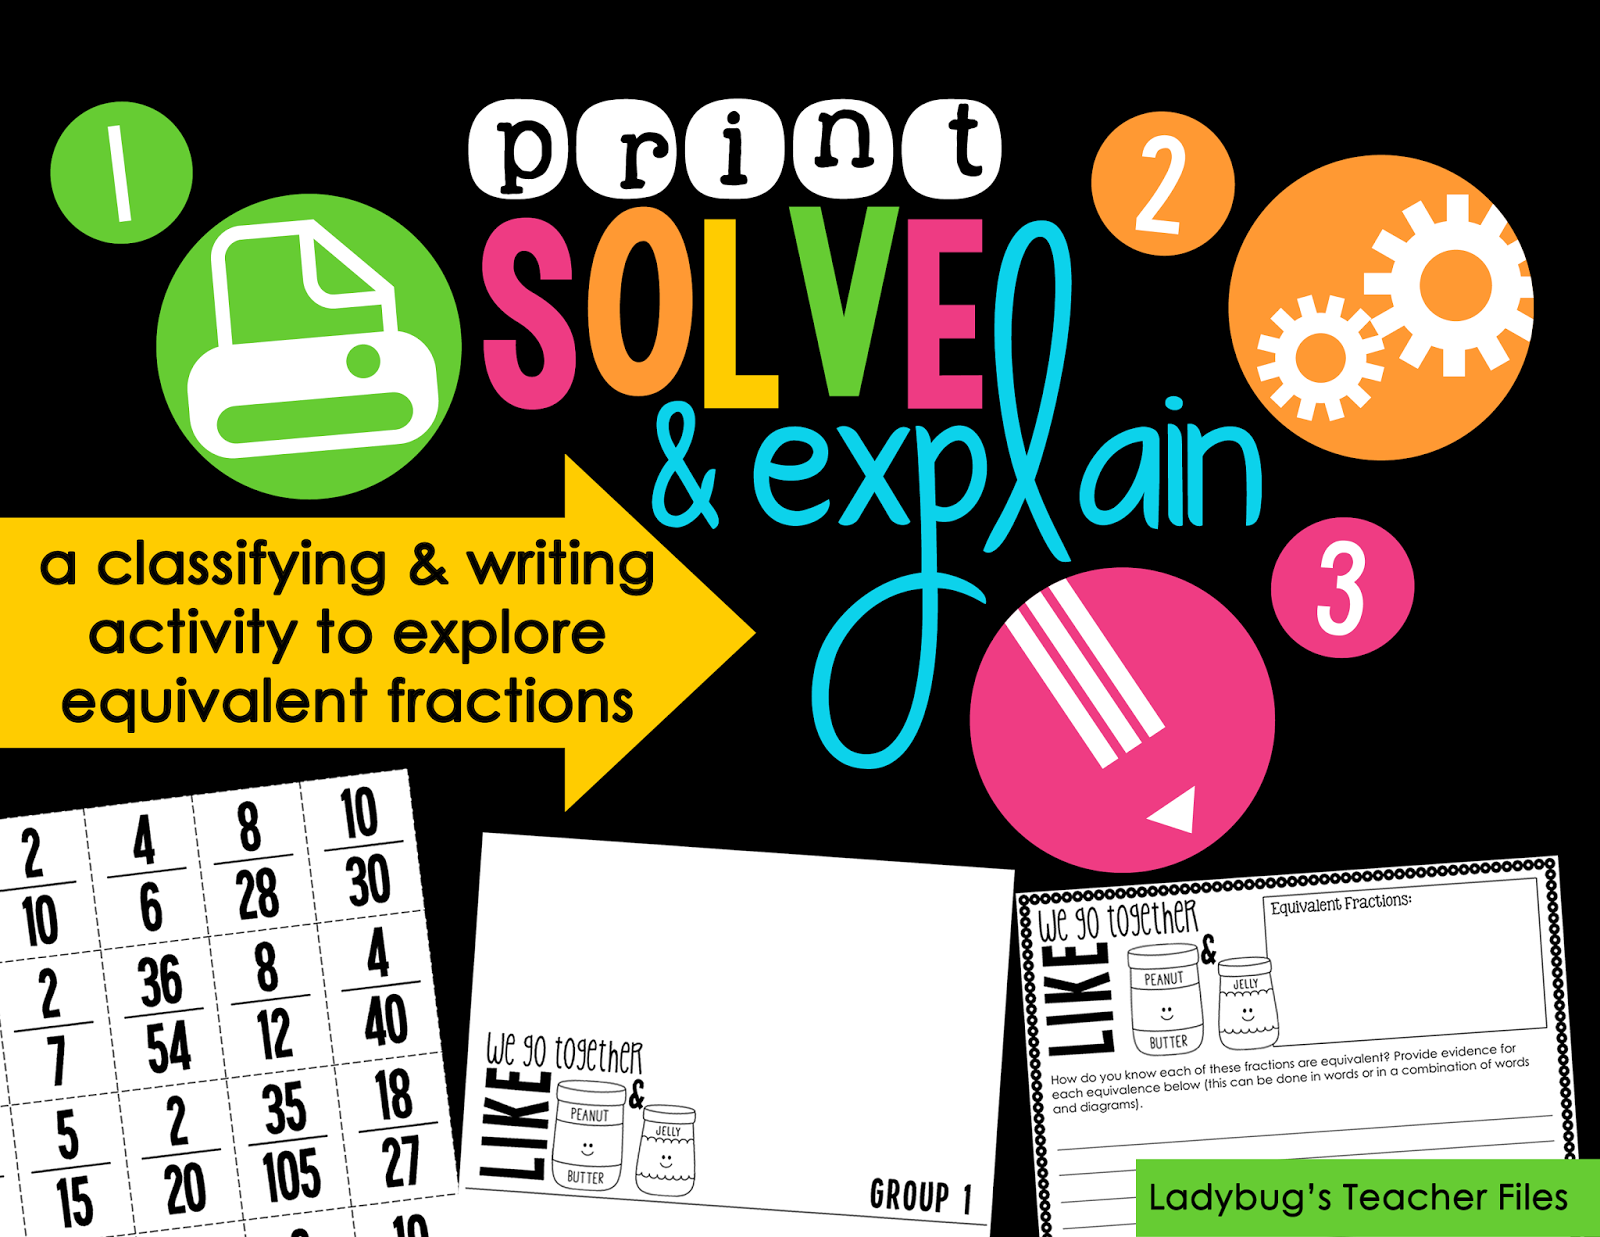 http://www.teacherspayteachers.com/Product/Print-Solve-Explain-Equivalent-Fractions-1117234